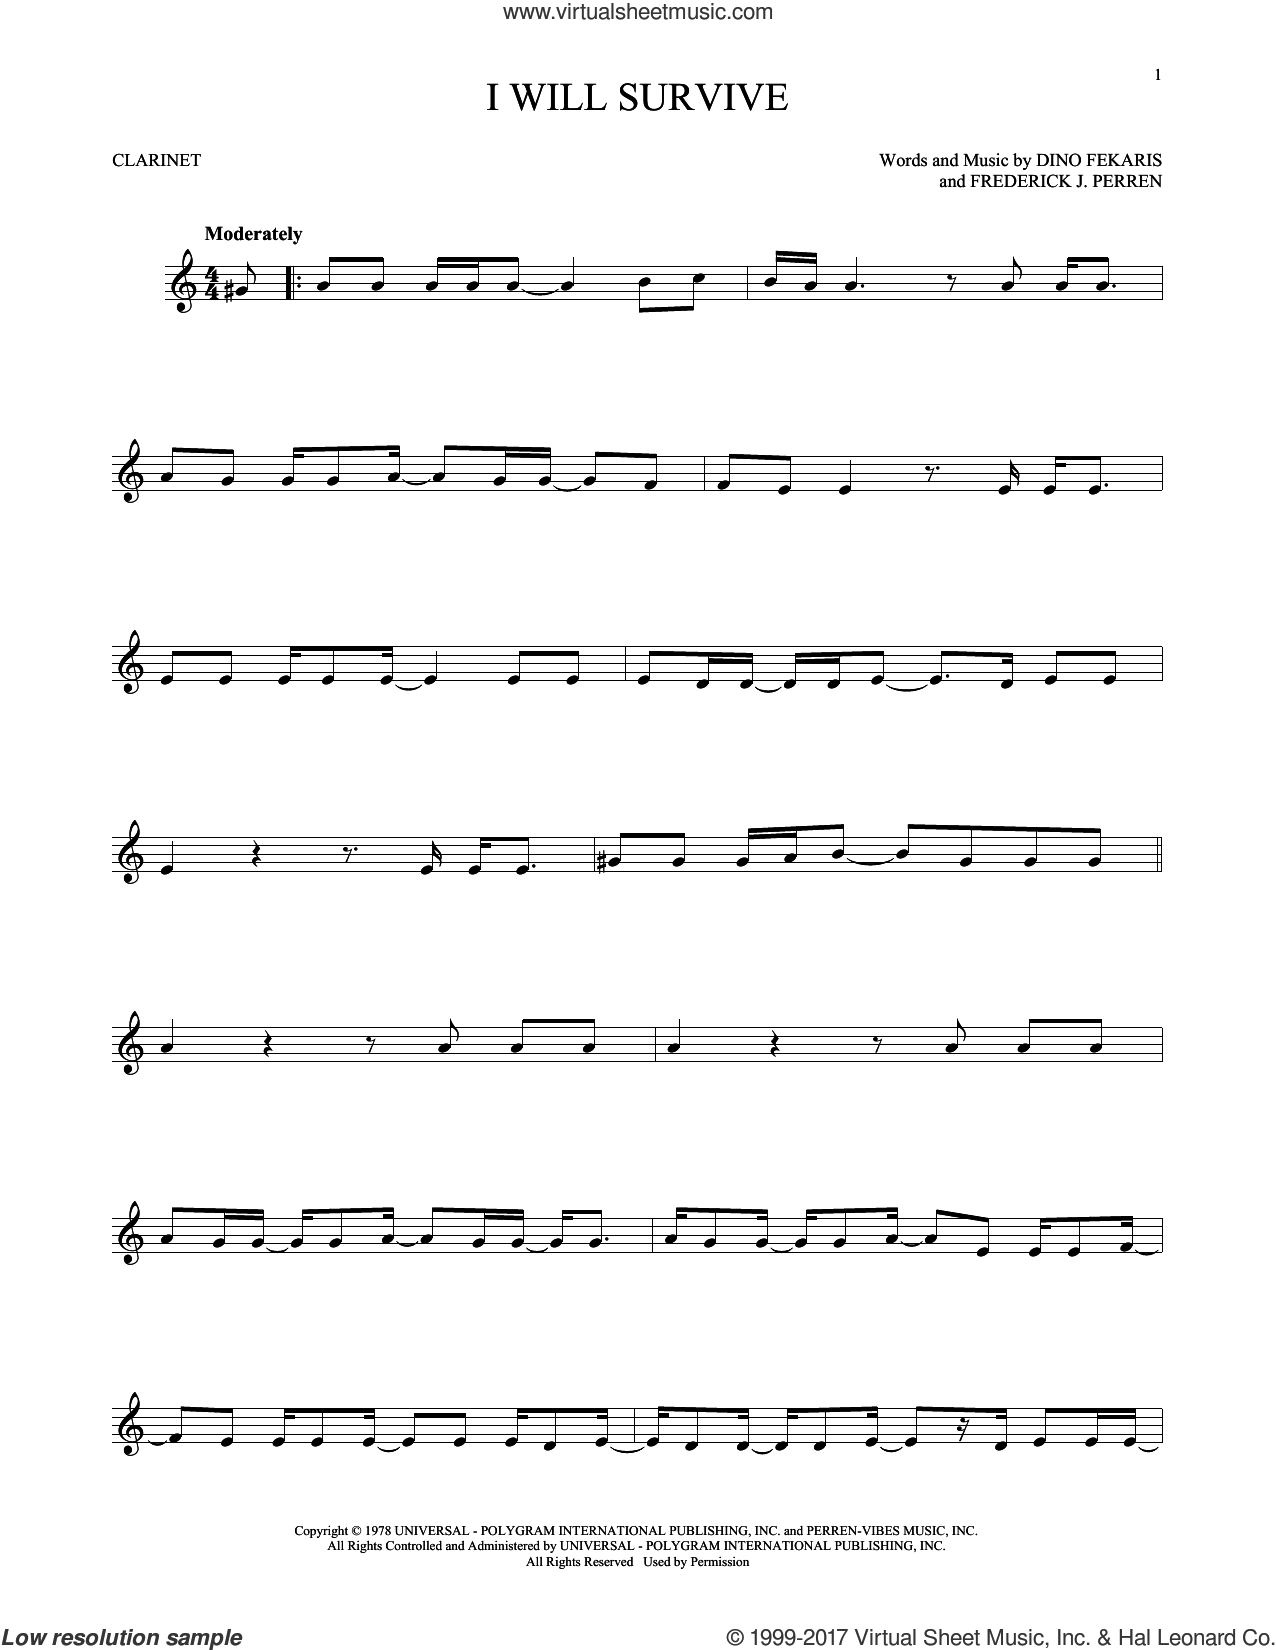 I Will Survive sheet music for clarinet solo by Gloria Gaynor, Chantay Savage, Dino Fekaris and Frederick Perren, intermediate skill level